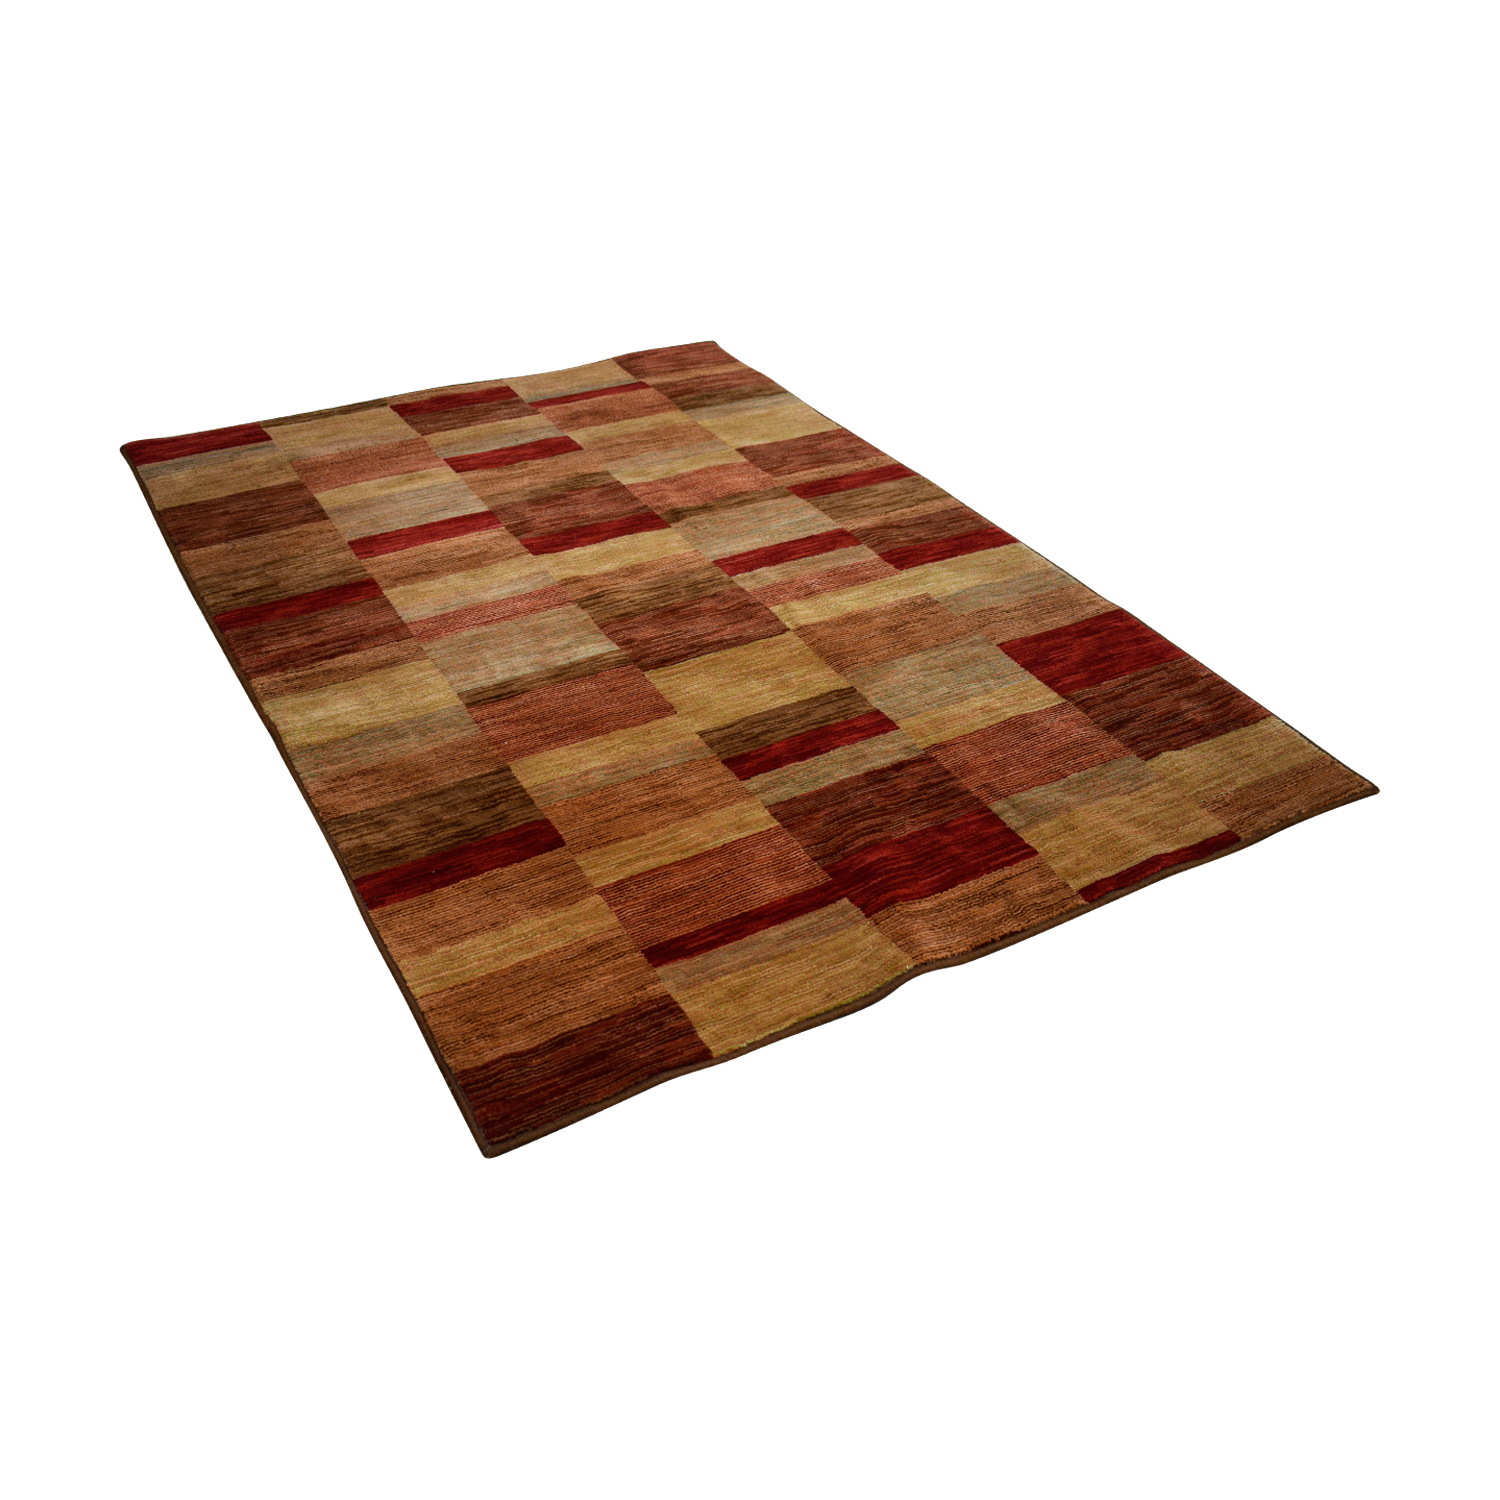 Raymour & Flanigan Raymour & Flanigan Shaw Living Burgundy Tan and Brown Rug